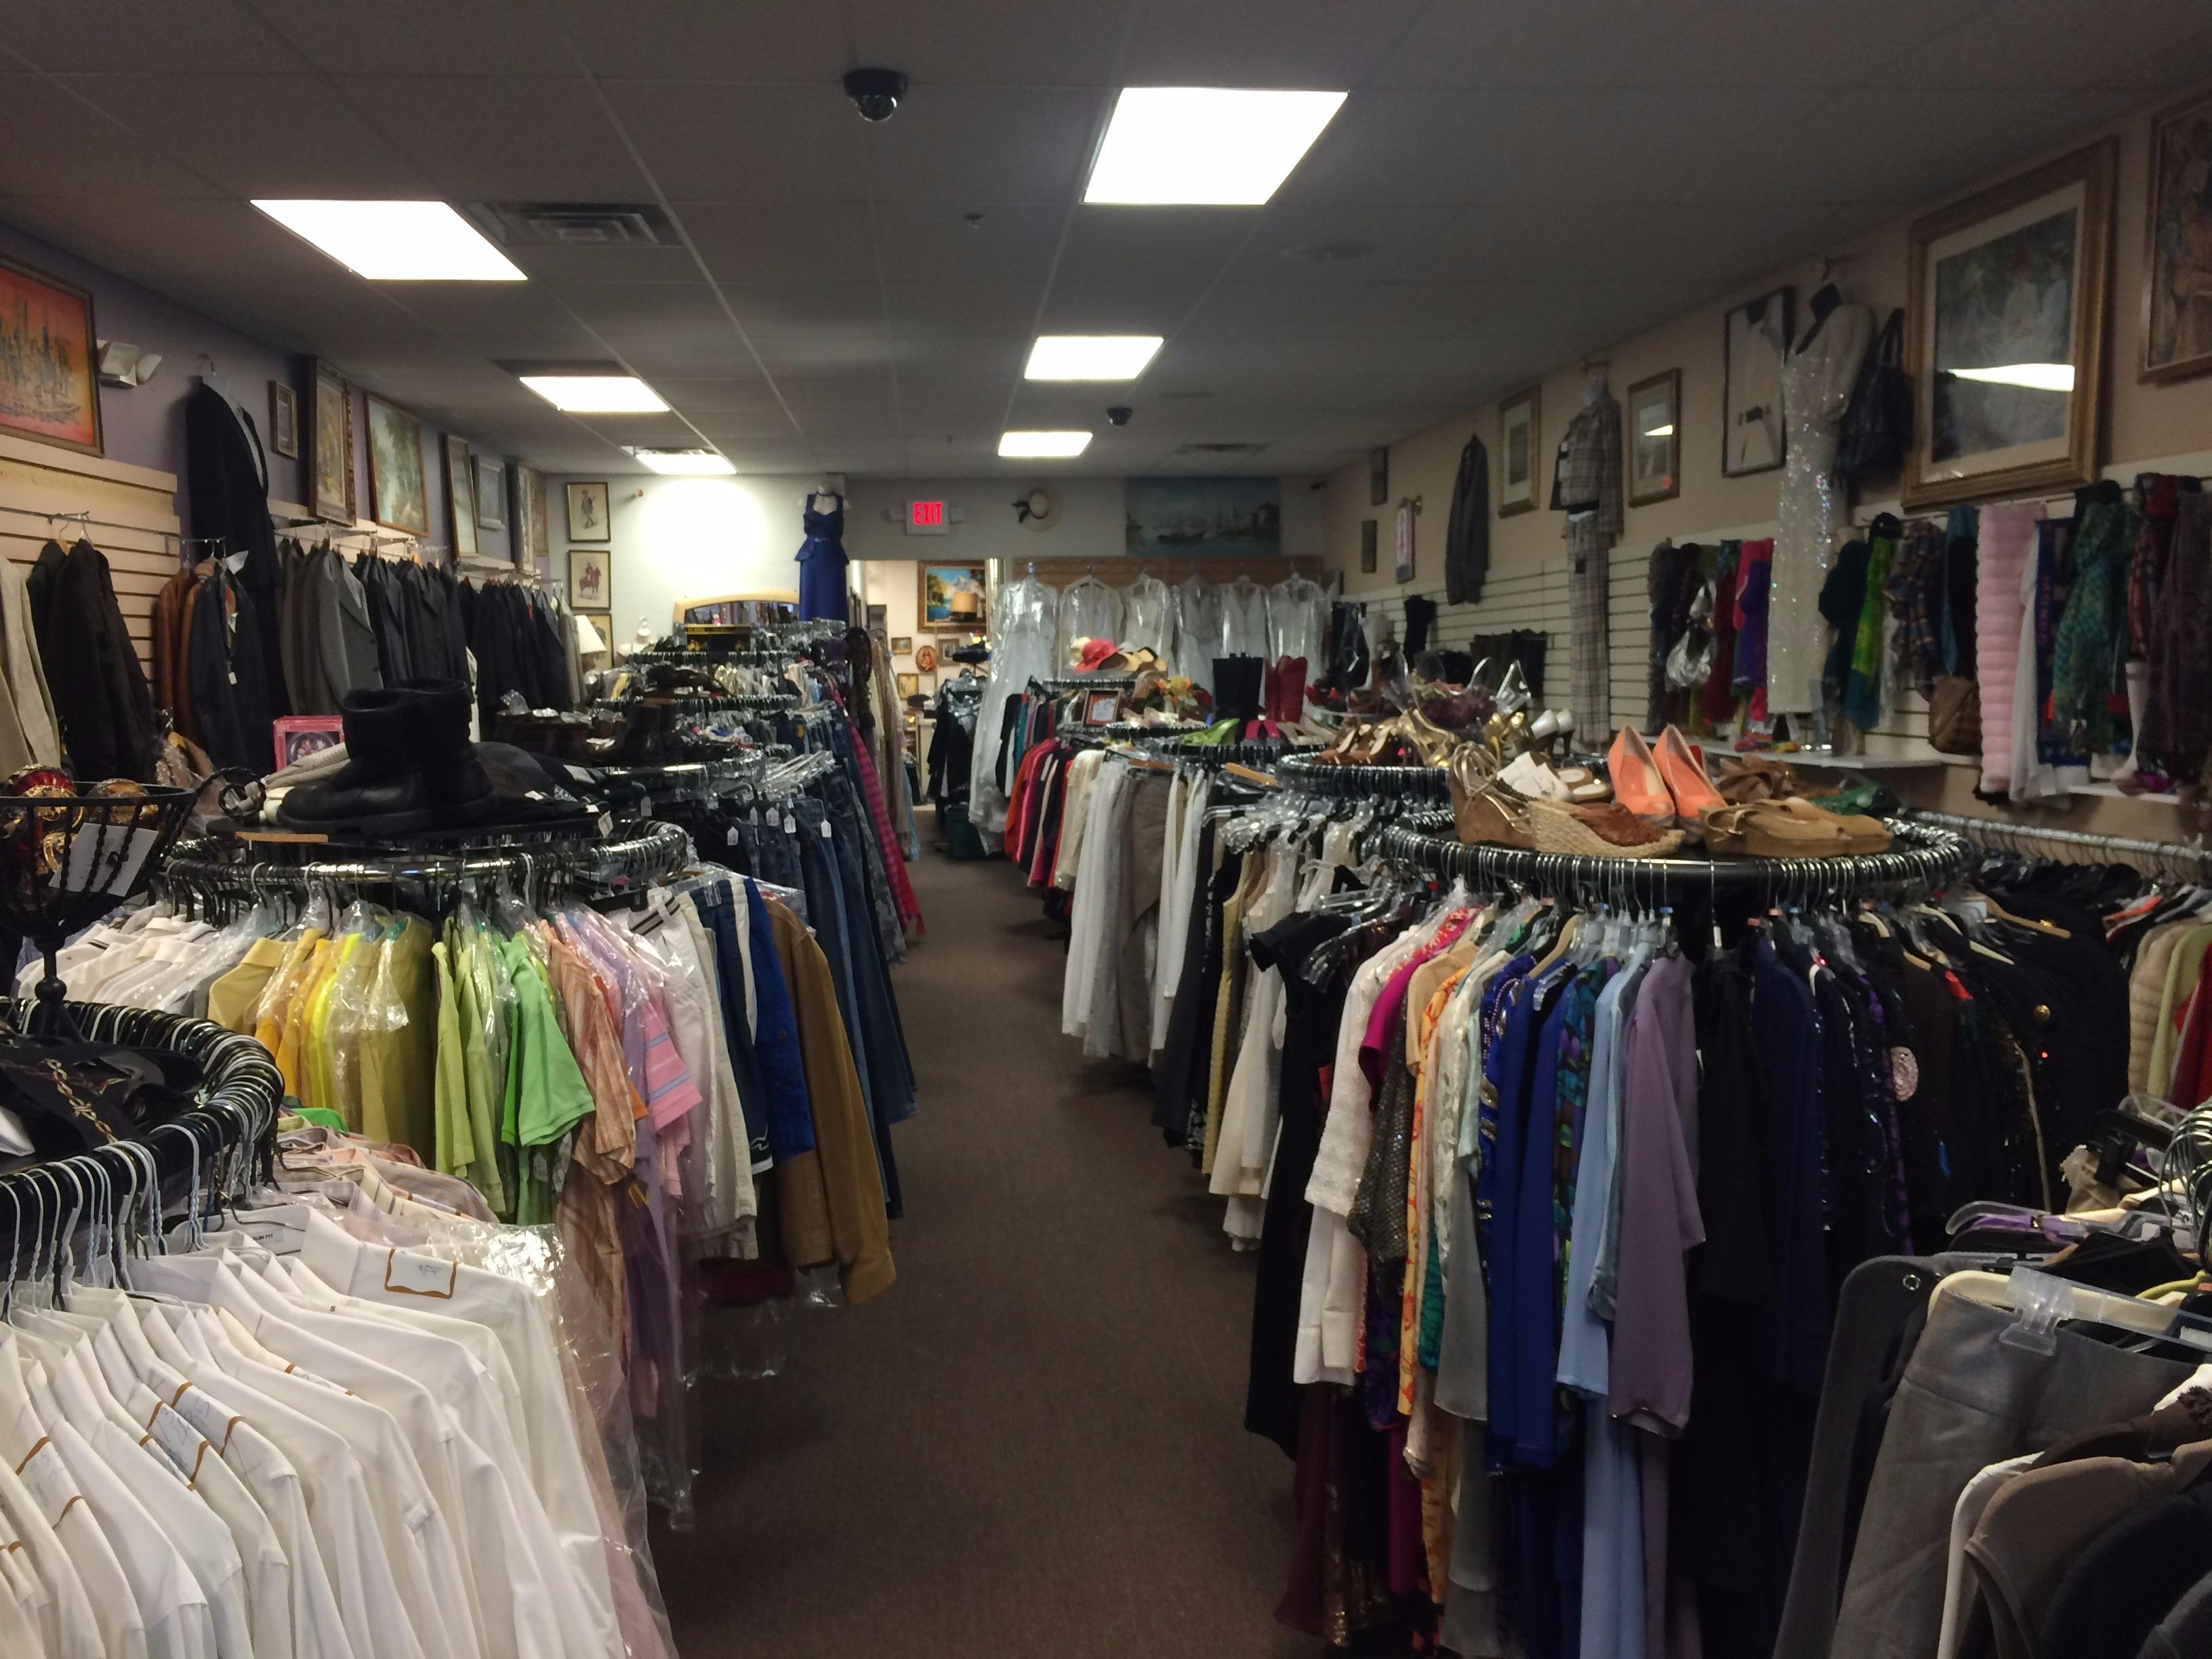 Fashion bazaar consignment boutique in shelby twp mi for High end consignment shops